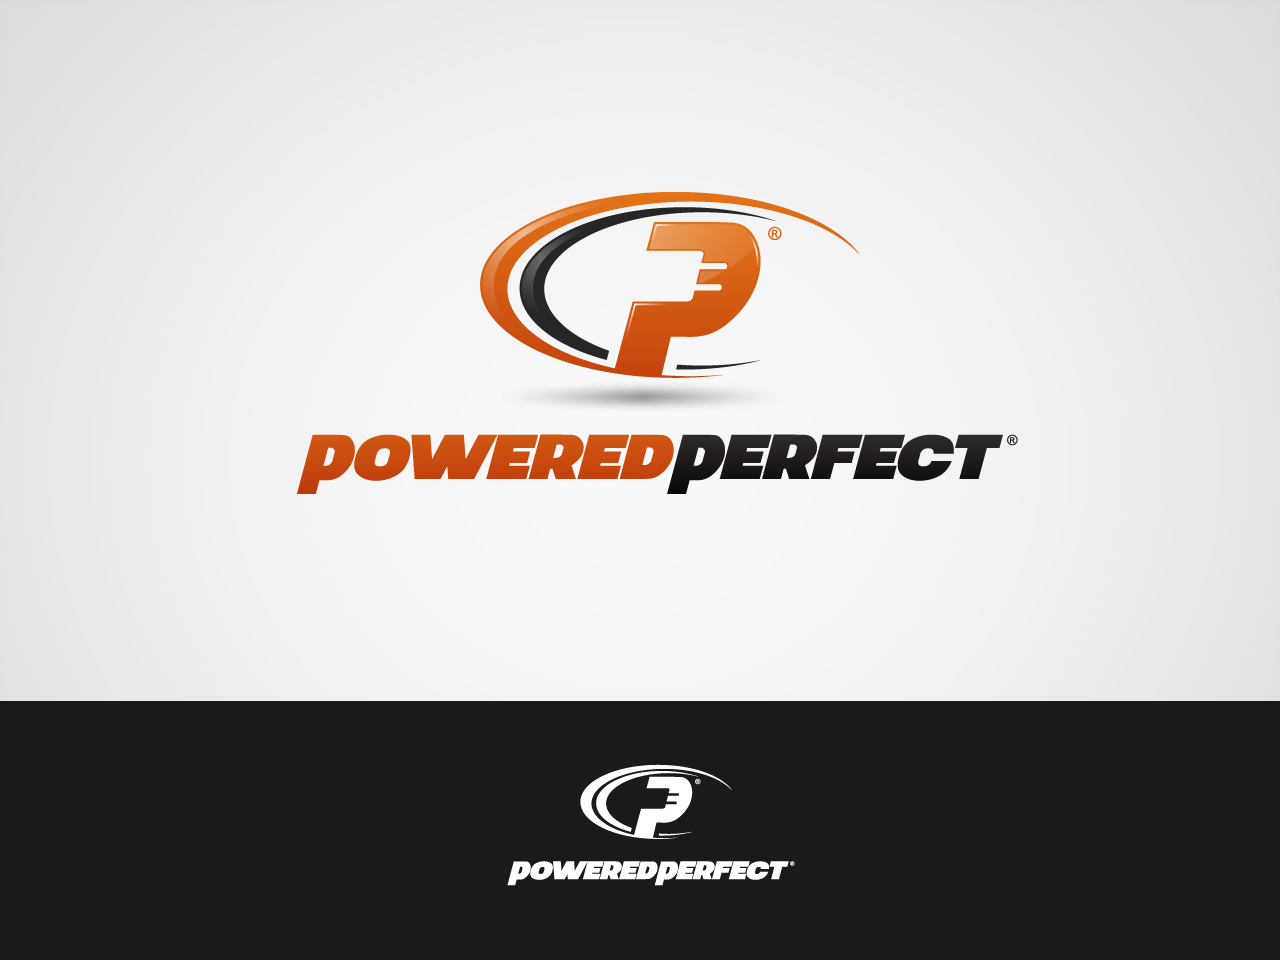 Logo Design by jpbituin - Entry No. 58 in the Logo Design Contest Captivating Logo Design for Powered Perfect.